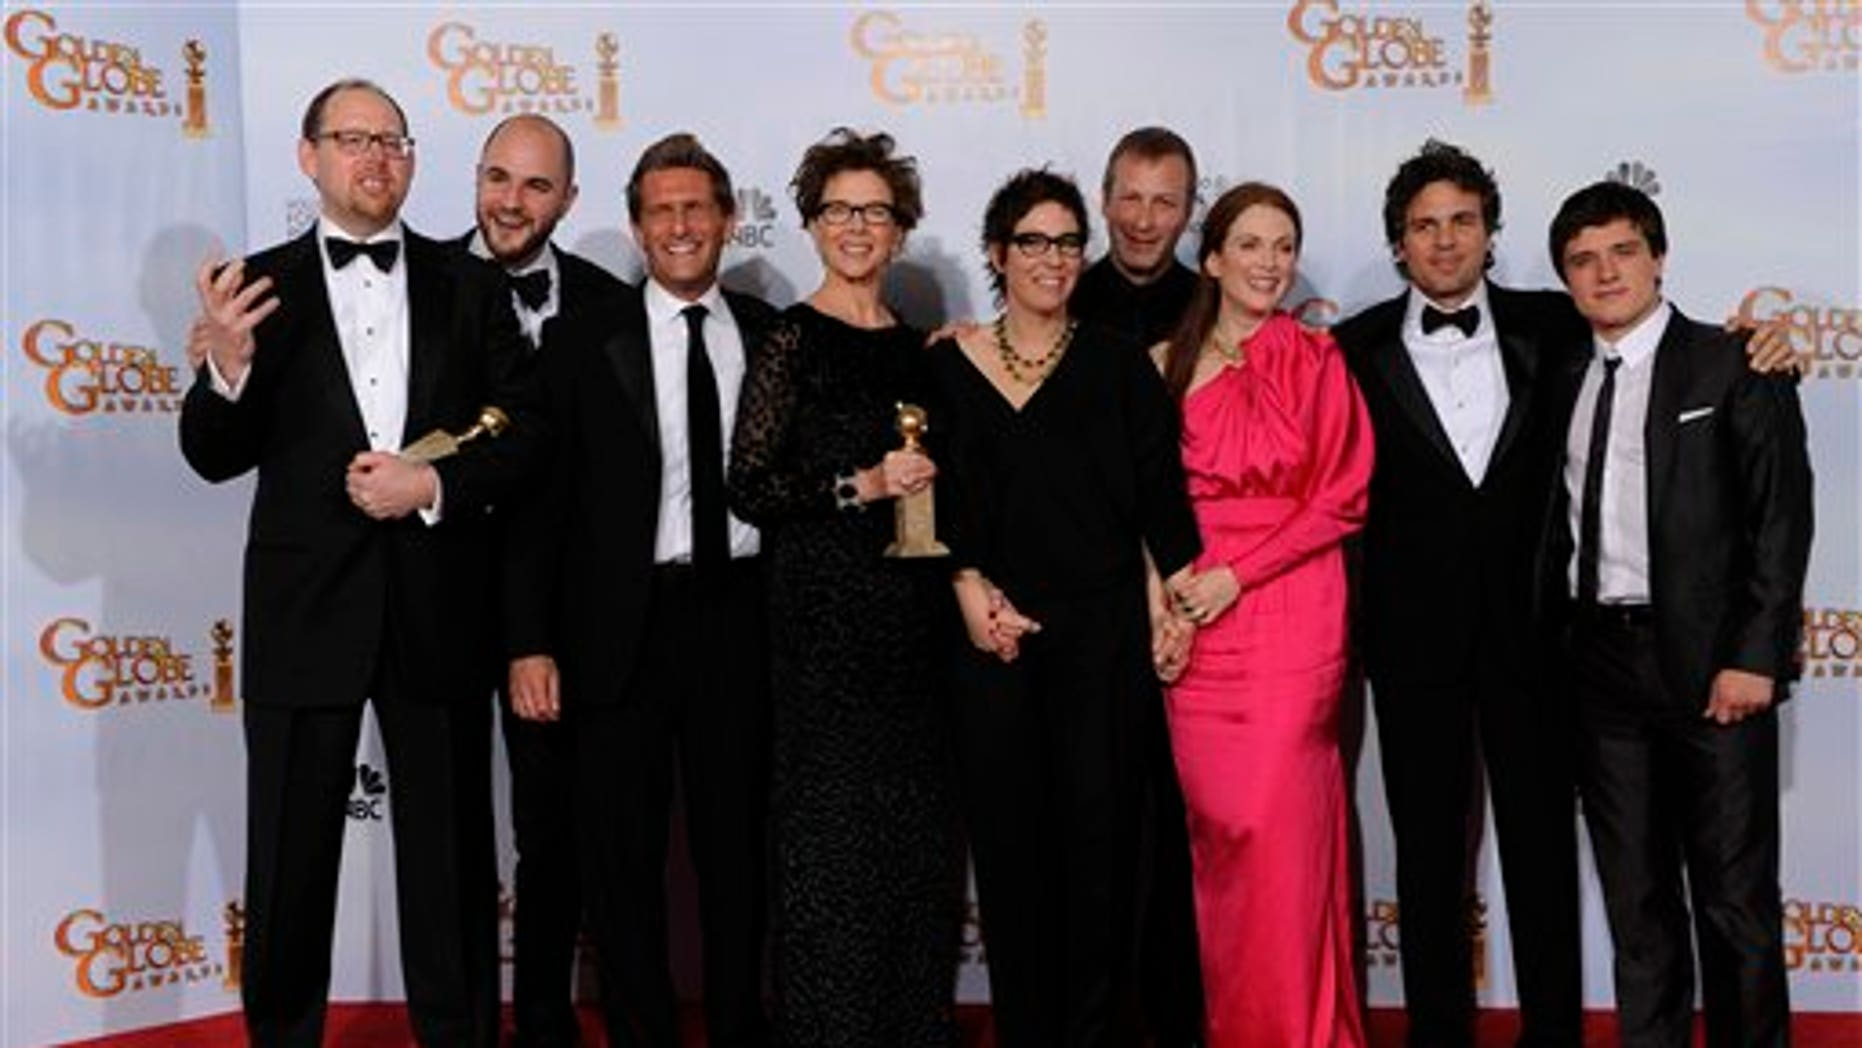 """The cast and crew of """"The Kids Are All Right,"""" pose with the award they won for Best Motion Picture - Comedy Or Musical at the Golden Globe Awards Sunday, Jan. 16, 2011, in Beverly Hills, Calif. (AP Photo/Matt J. Terrill)"""